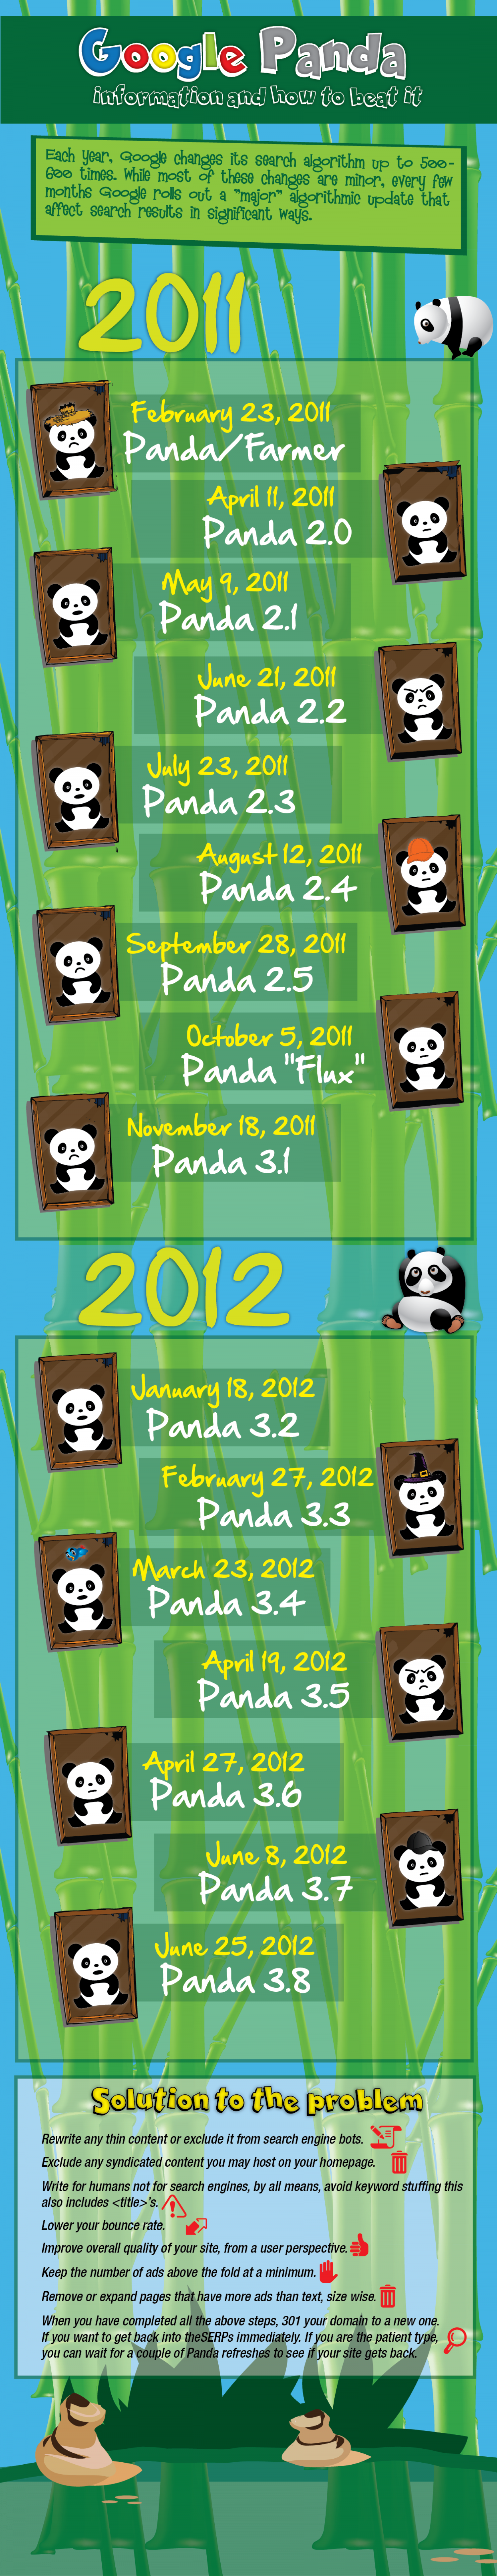 Google Panda update - And how to beat it! Infographic